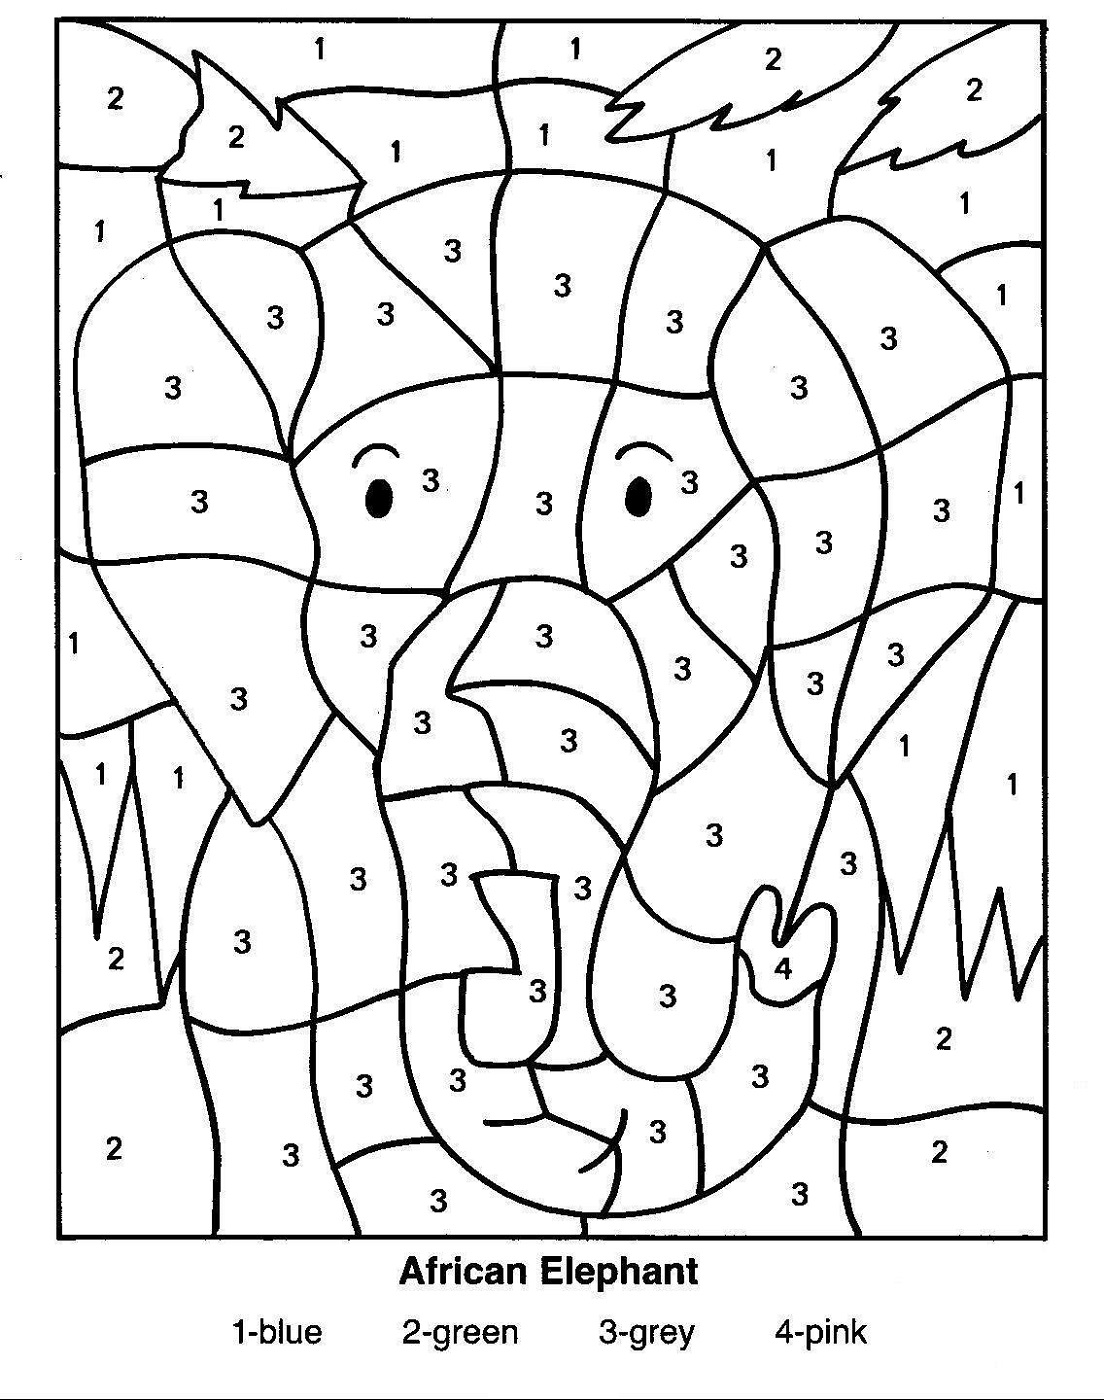 Colouring by numbers worksheets